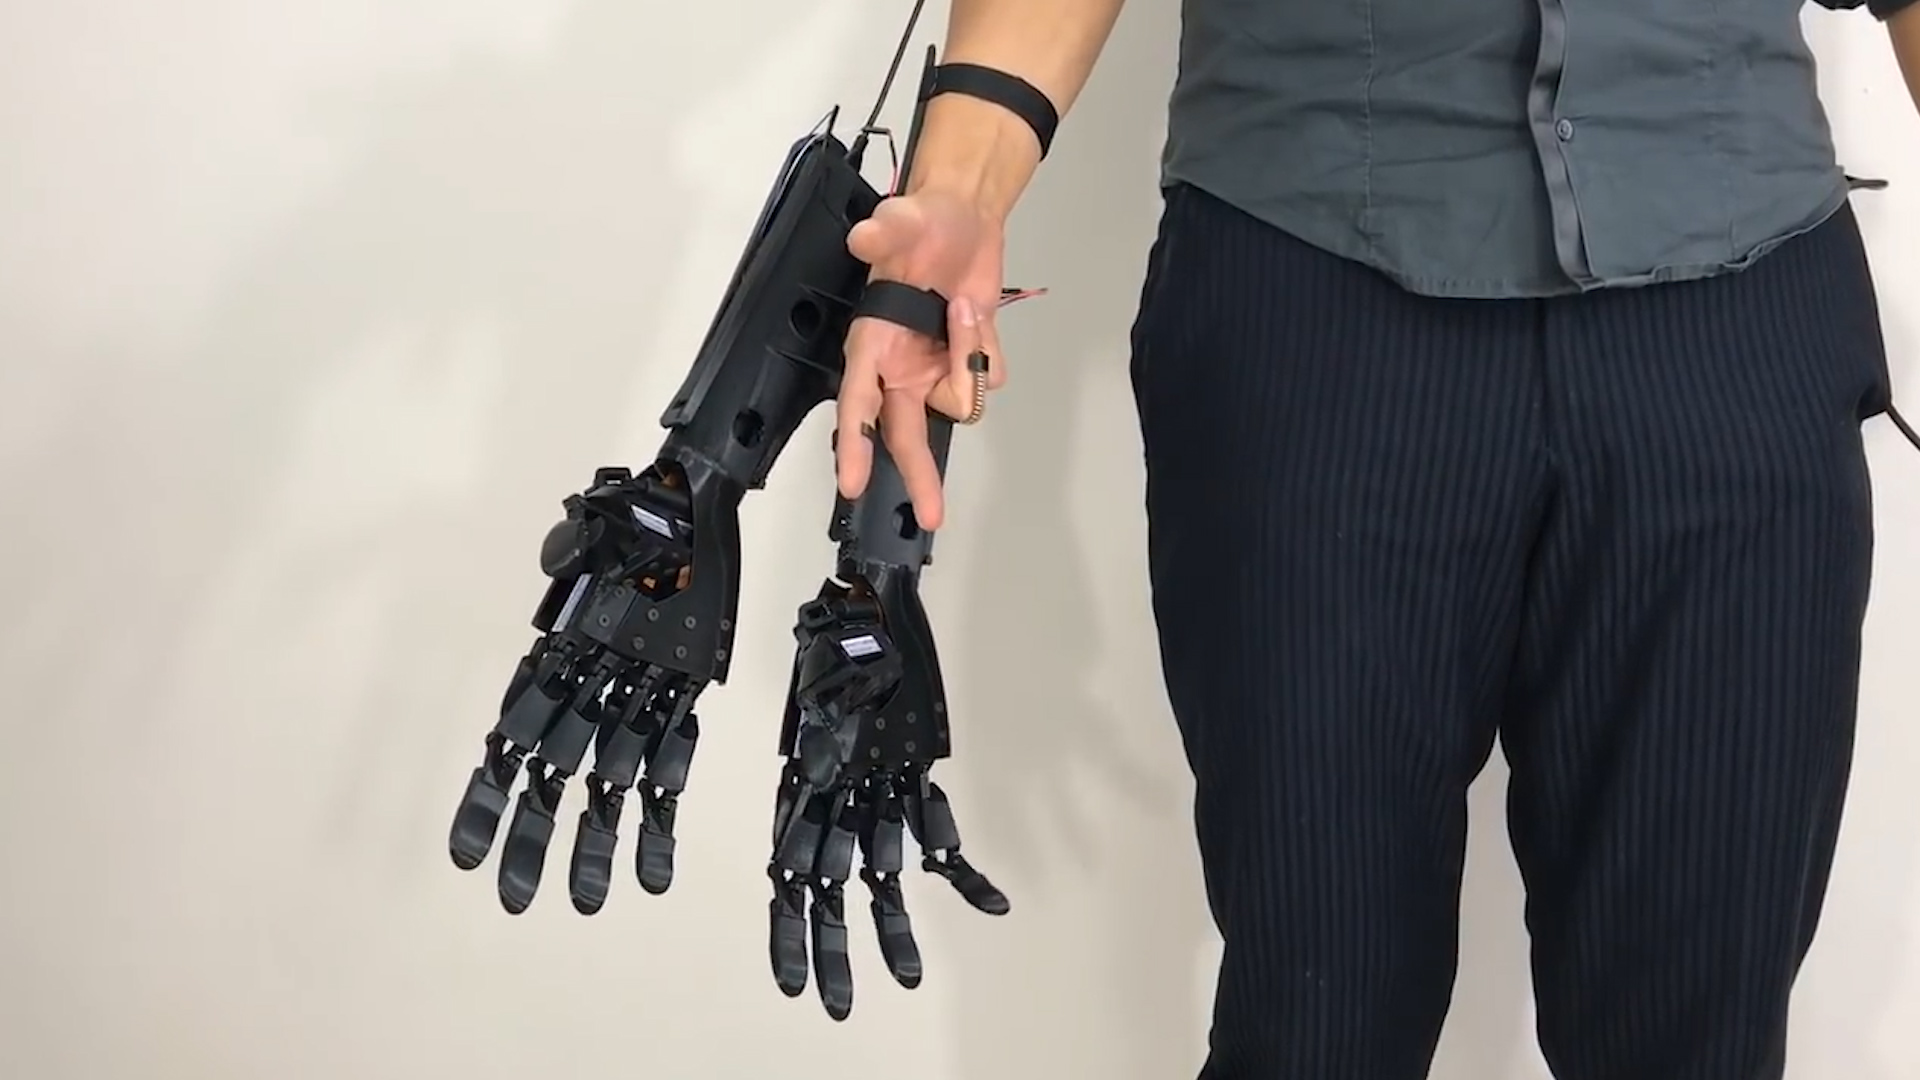 A 3D-printed wearable device could give you an extra hand     literally